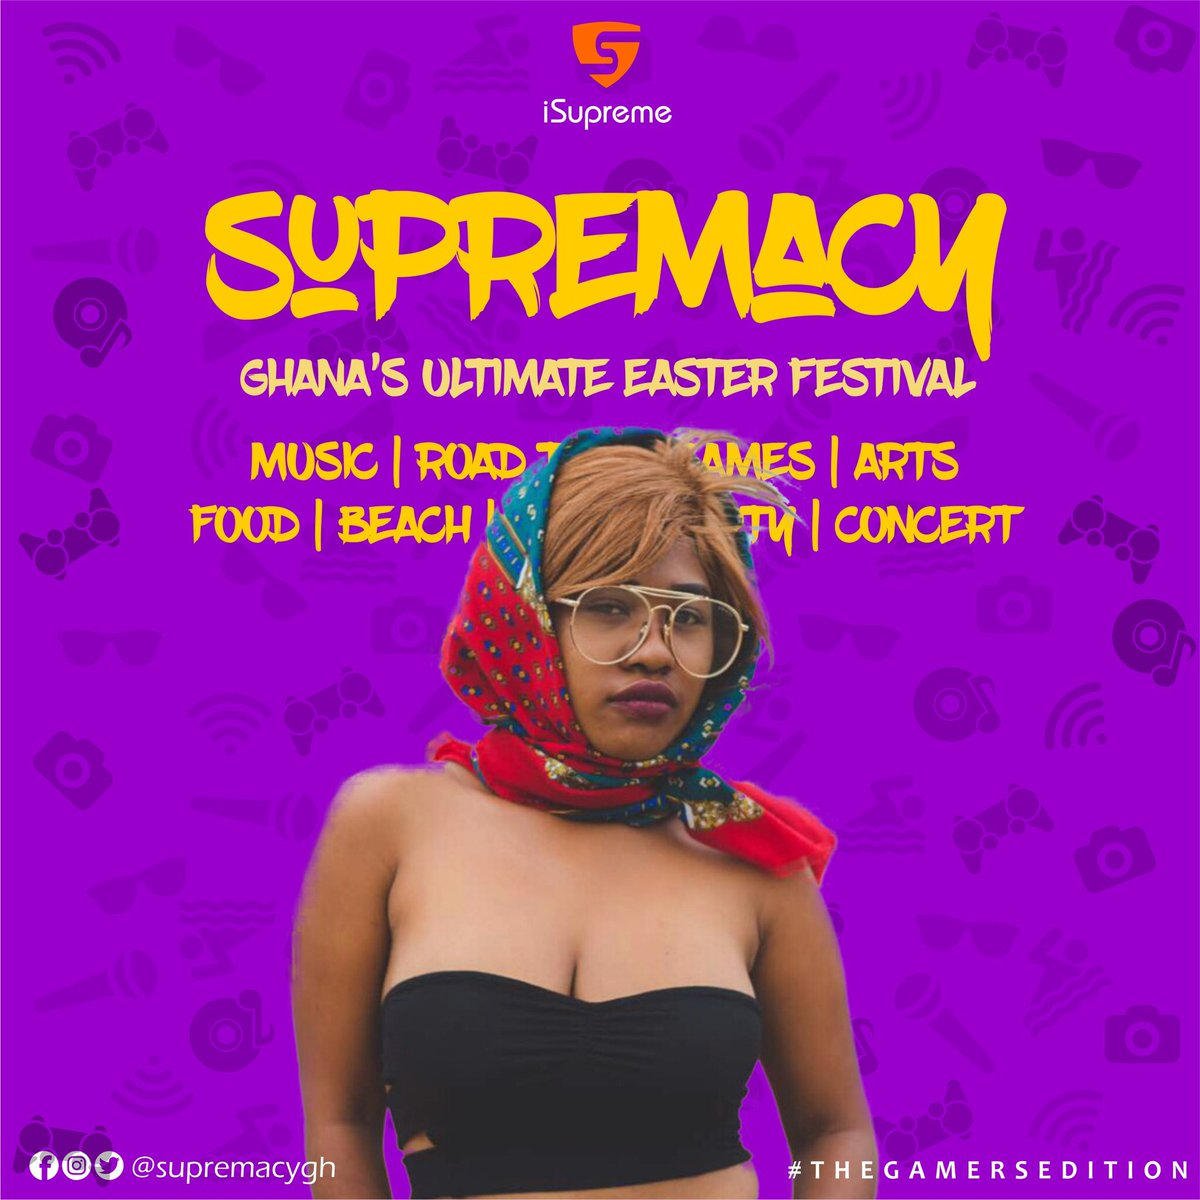 Easter came early. #Supremacy2018 Ready?...